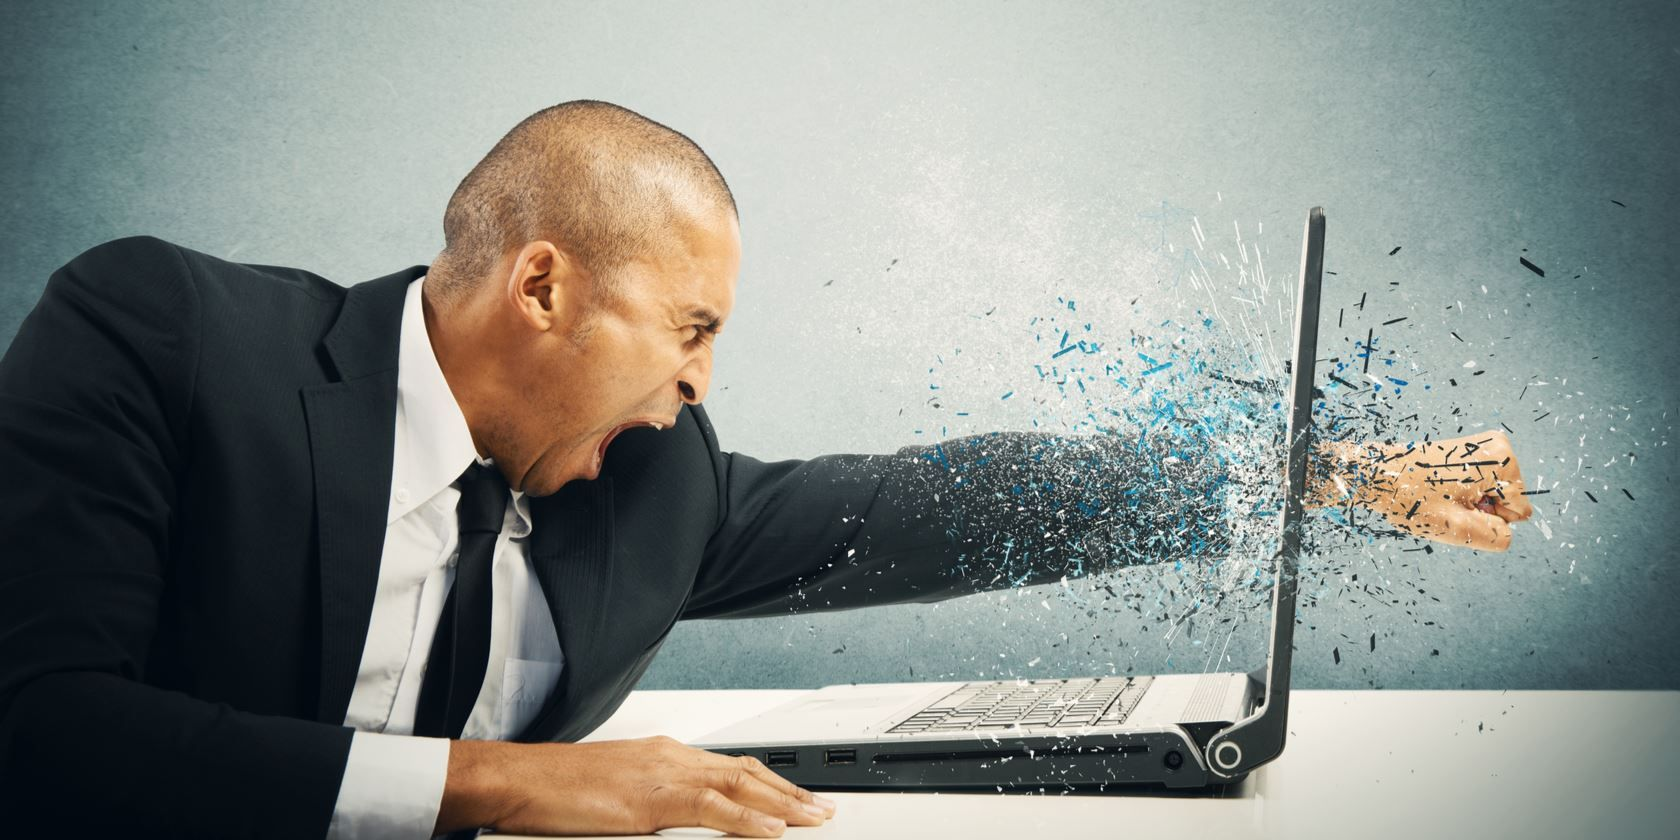 5 Habits That Are Destroying Your Laptop